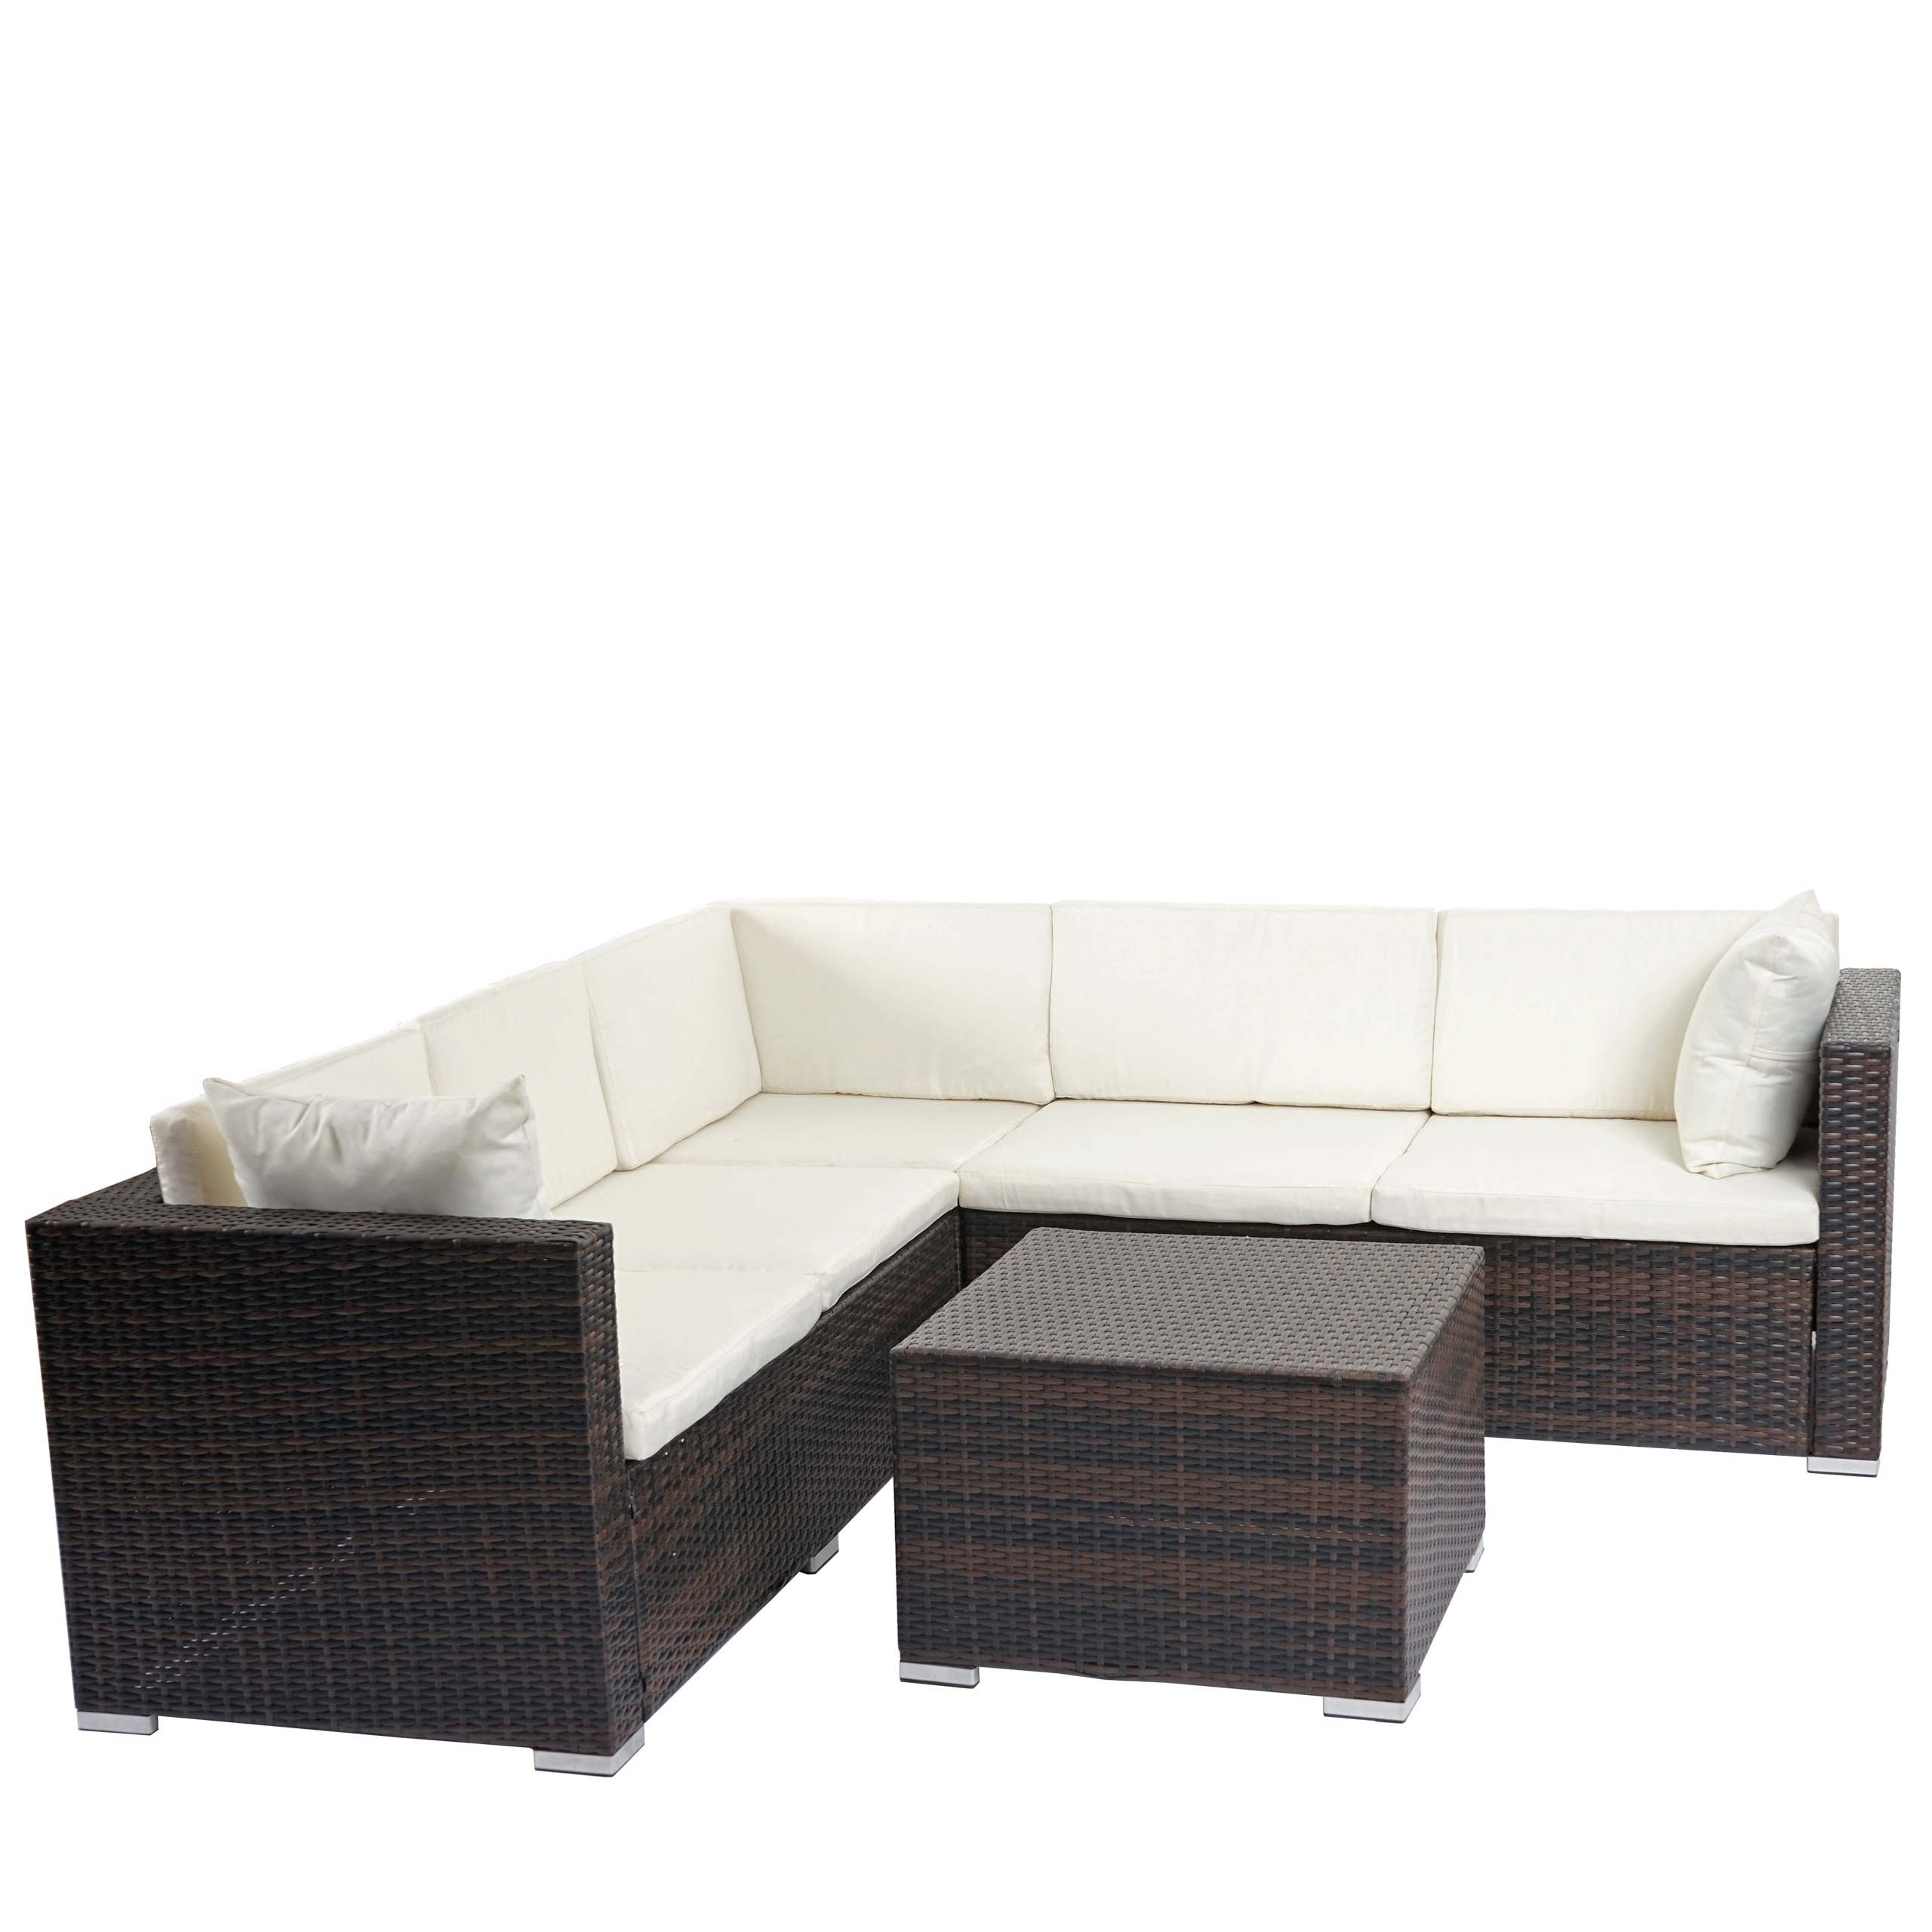 poly rattan sofa garnitur albury sitzgruppe lounge set. Black Bedroom Furniture Sets. Home Design Ideas